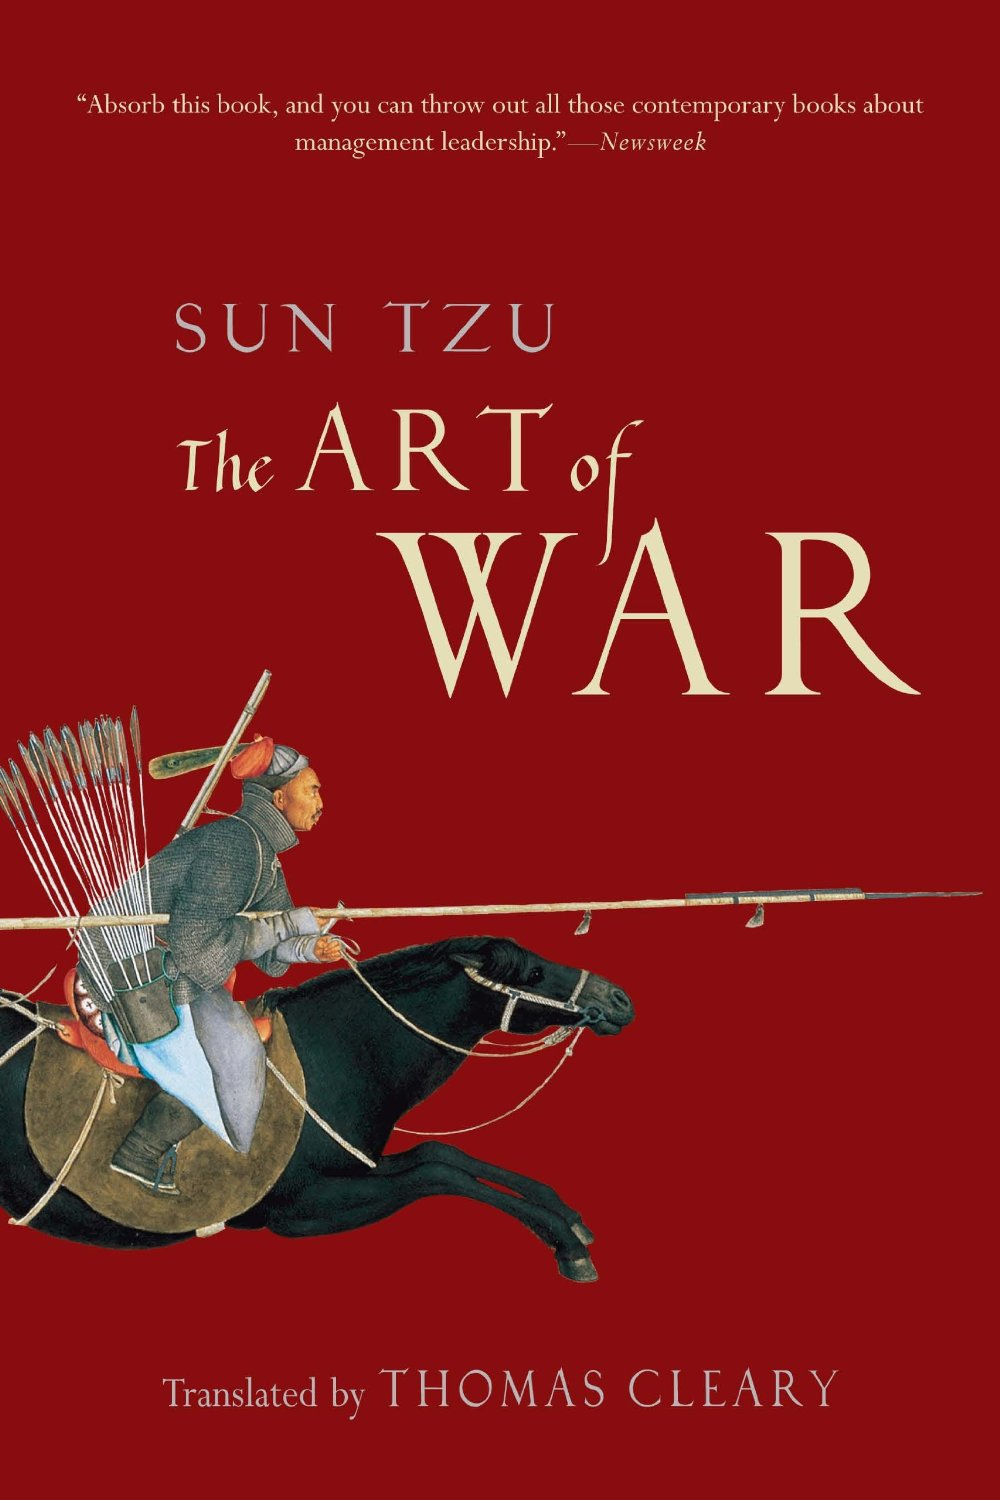 """<i><a href=""""http://www.amazon.com/dp/1599869772/?tag=timecom-20"""" target=""""_blank"""">The Art of War</a></i>                                   By Sun Tzu, 68 pages. The cunning yet ruthless ancient Chinese military handbook has proved instructive for centuries—Tony even made use of it in <i>The Sopranos</i>."""